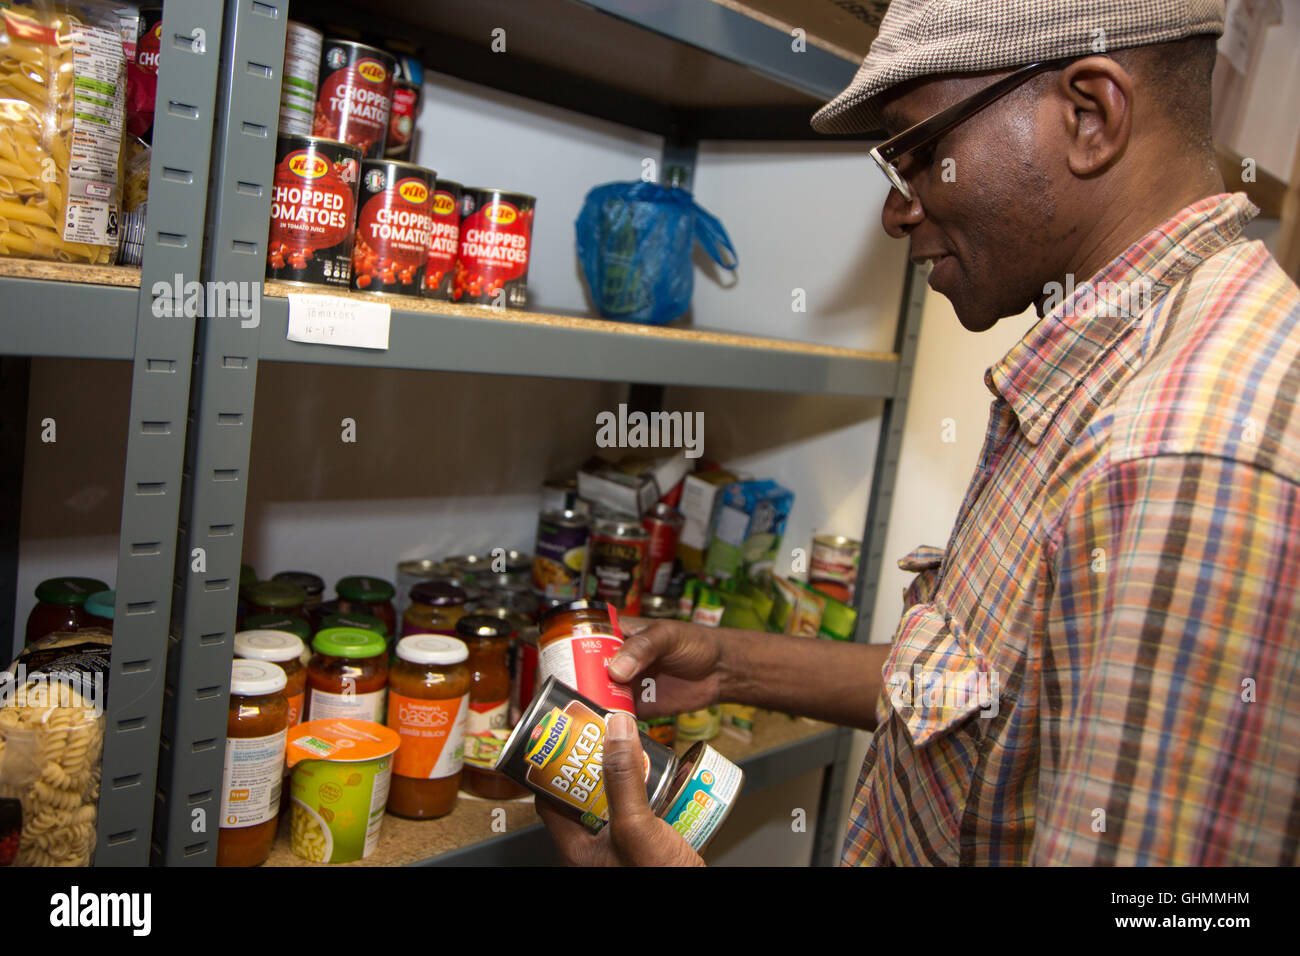 A volunteer reaches in to stock a shelf at North Paddington foodbank. - Stock Image